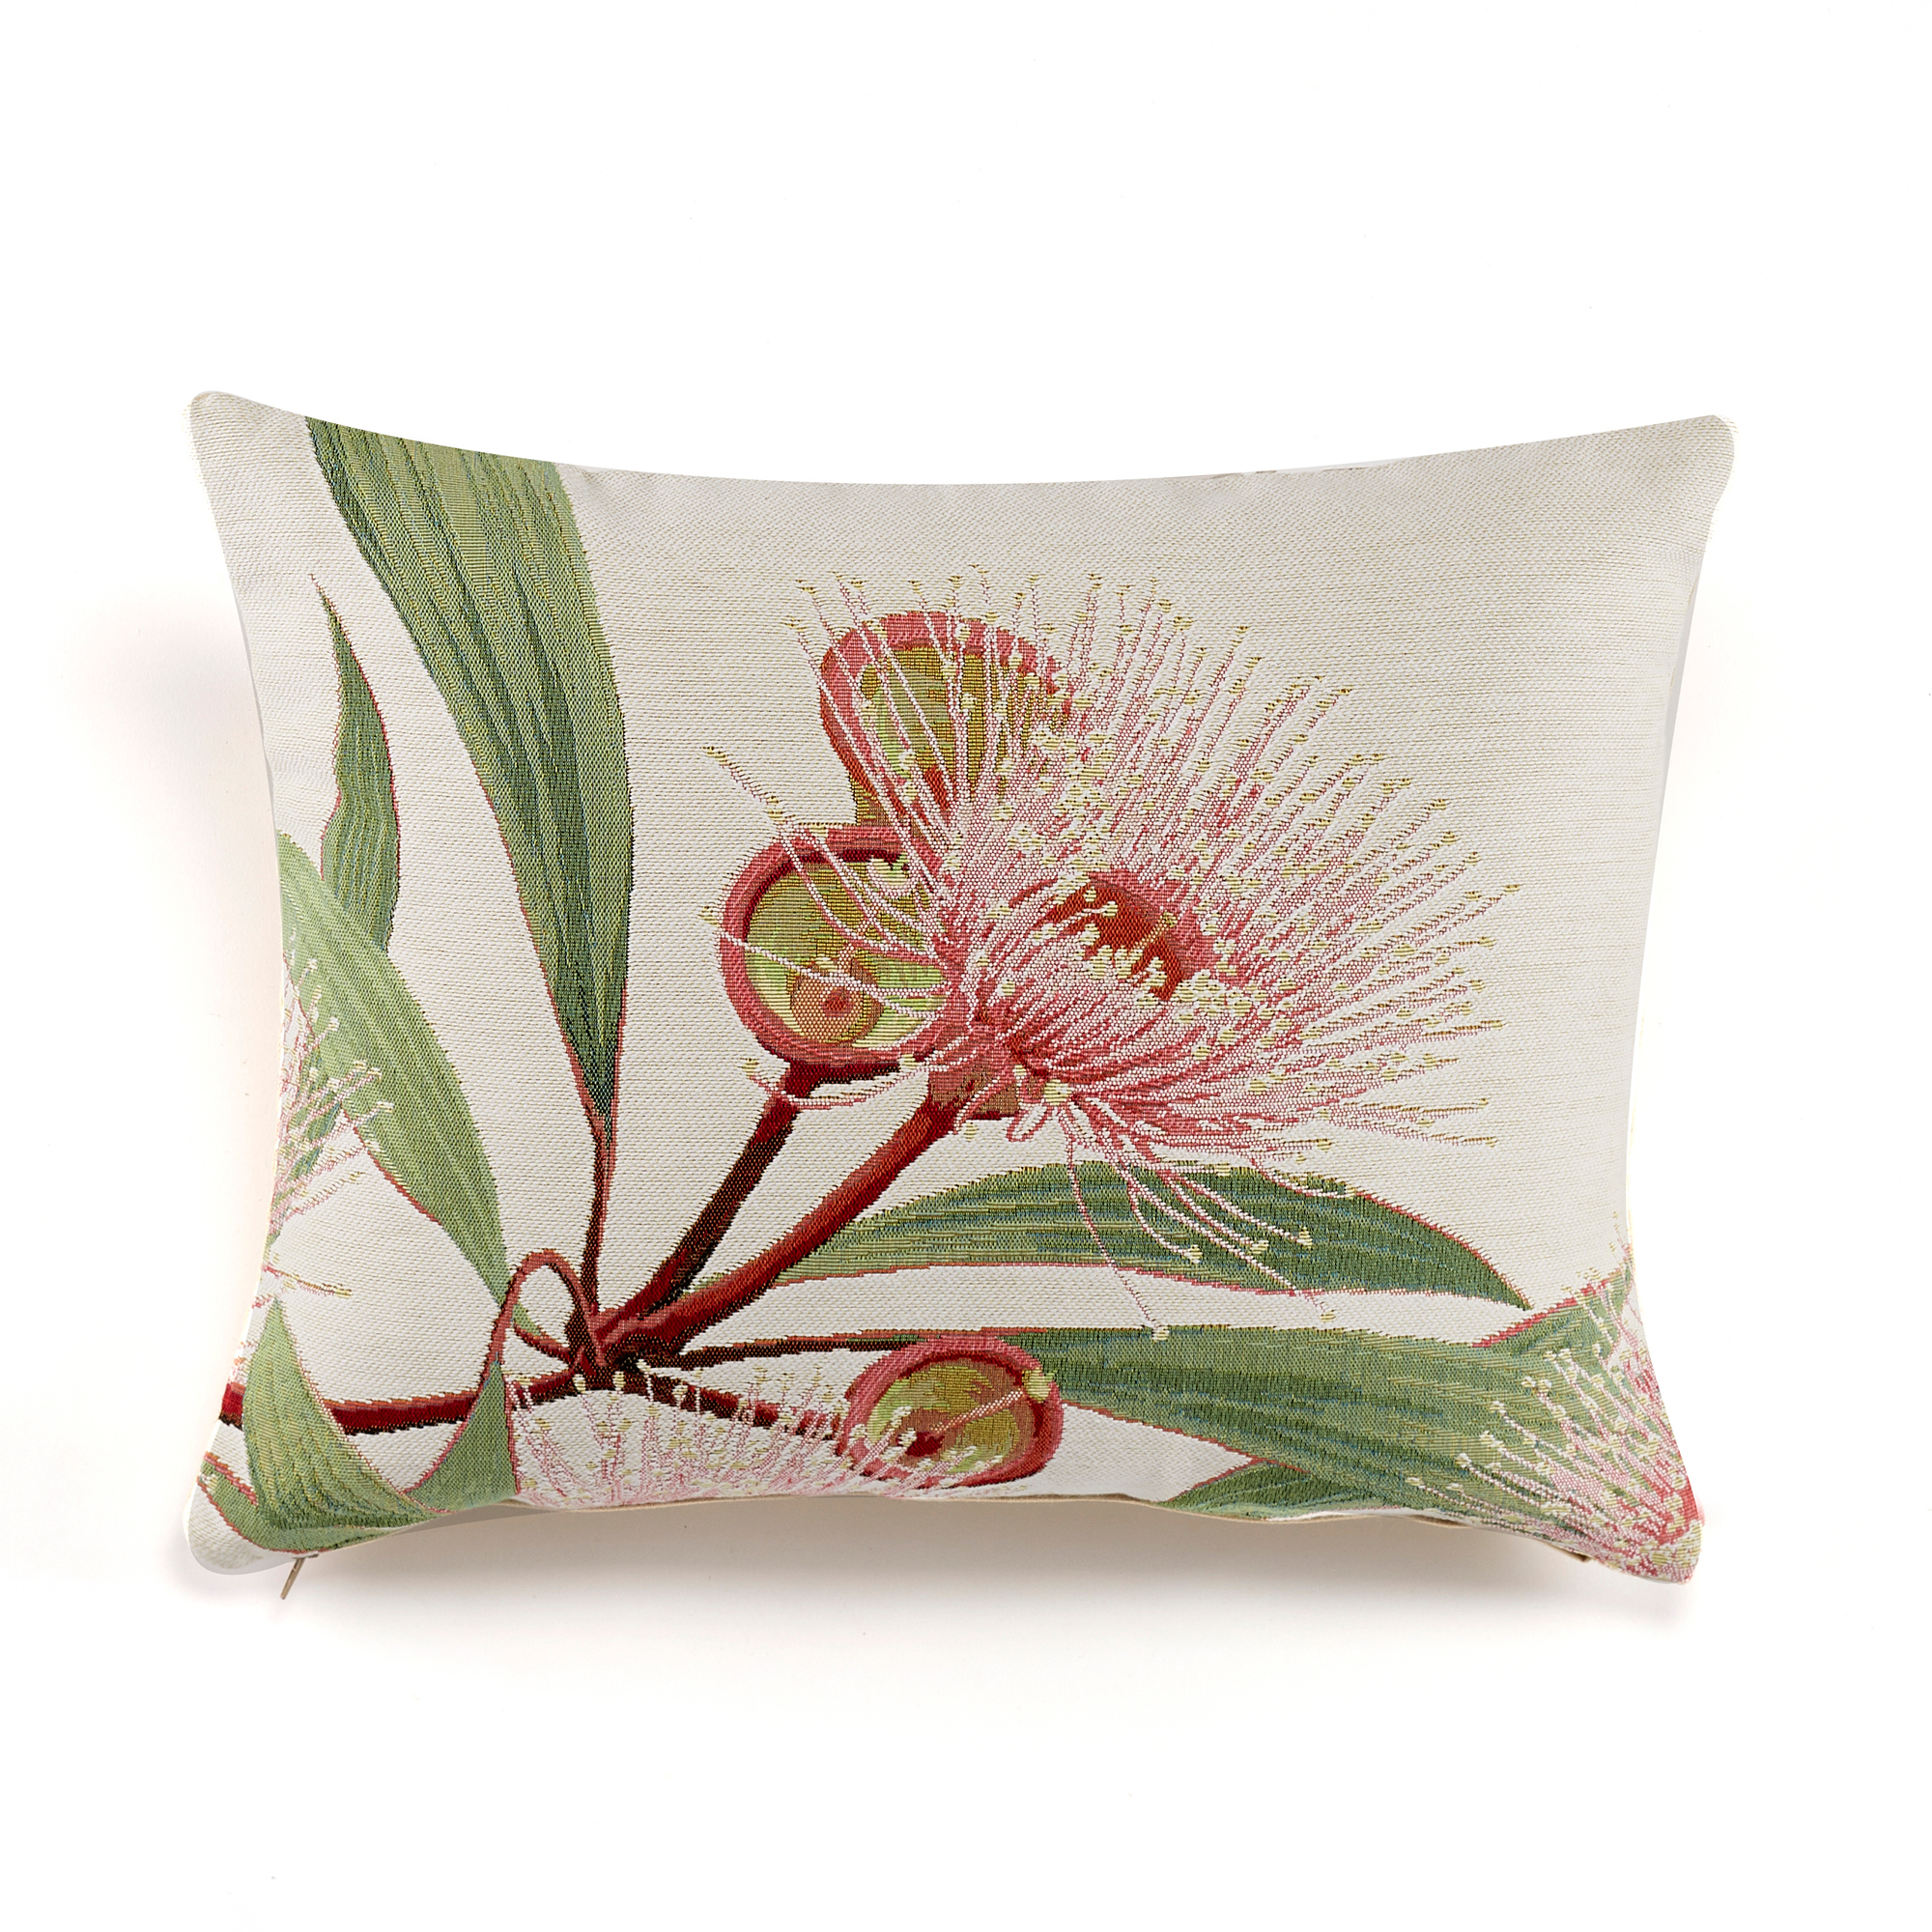 Paradise Garden French Tapestry Pillows, Pink Blossom